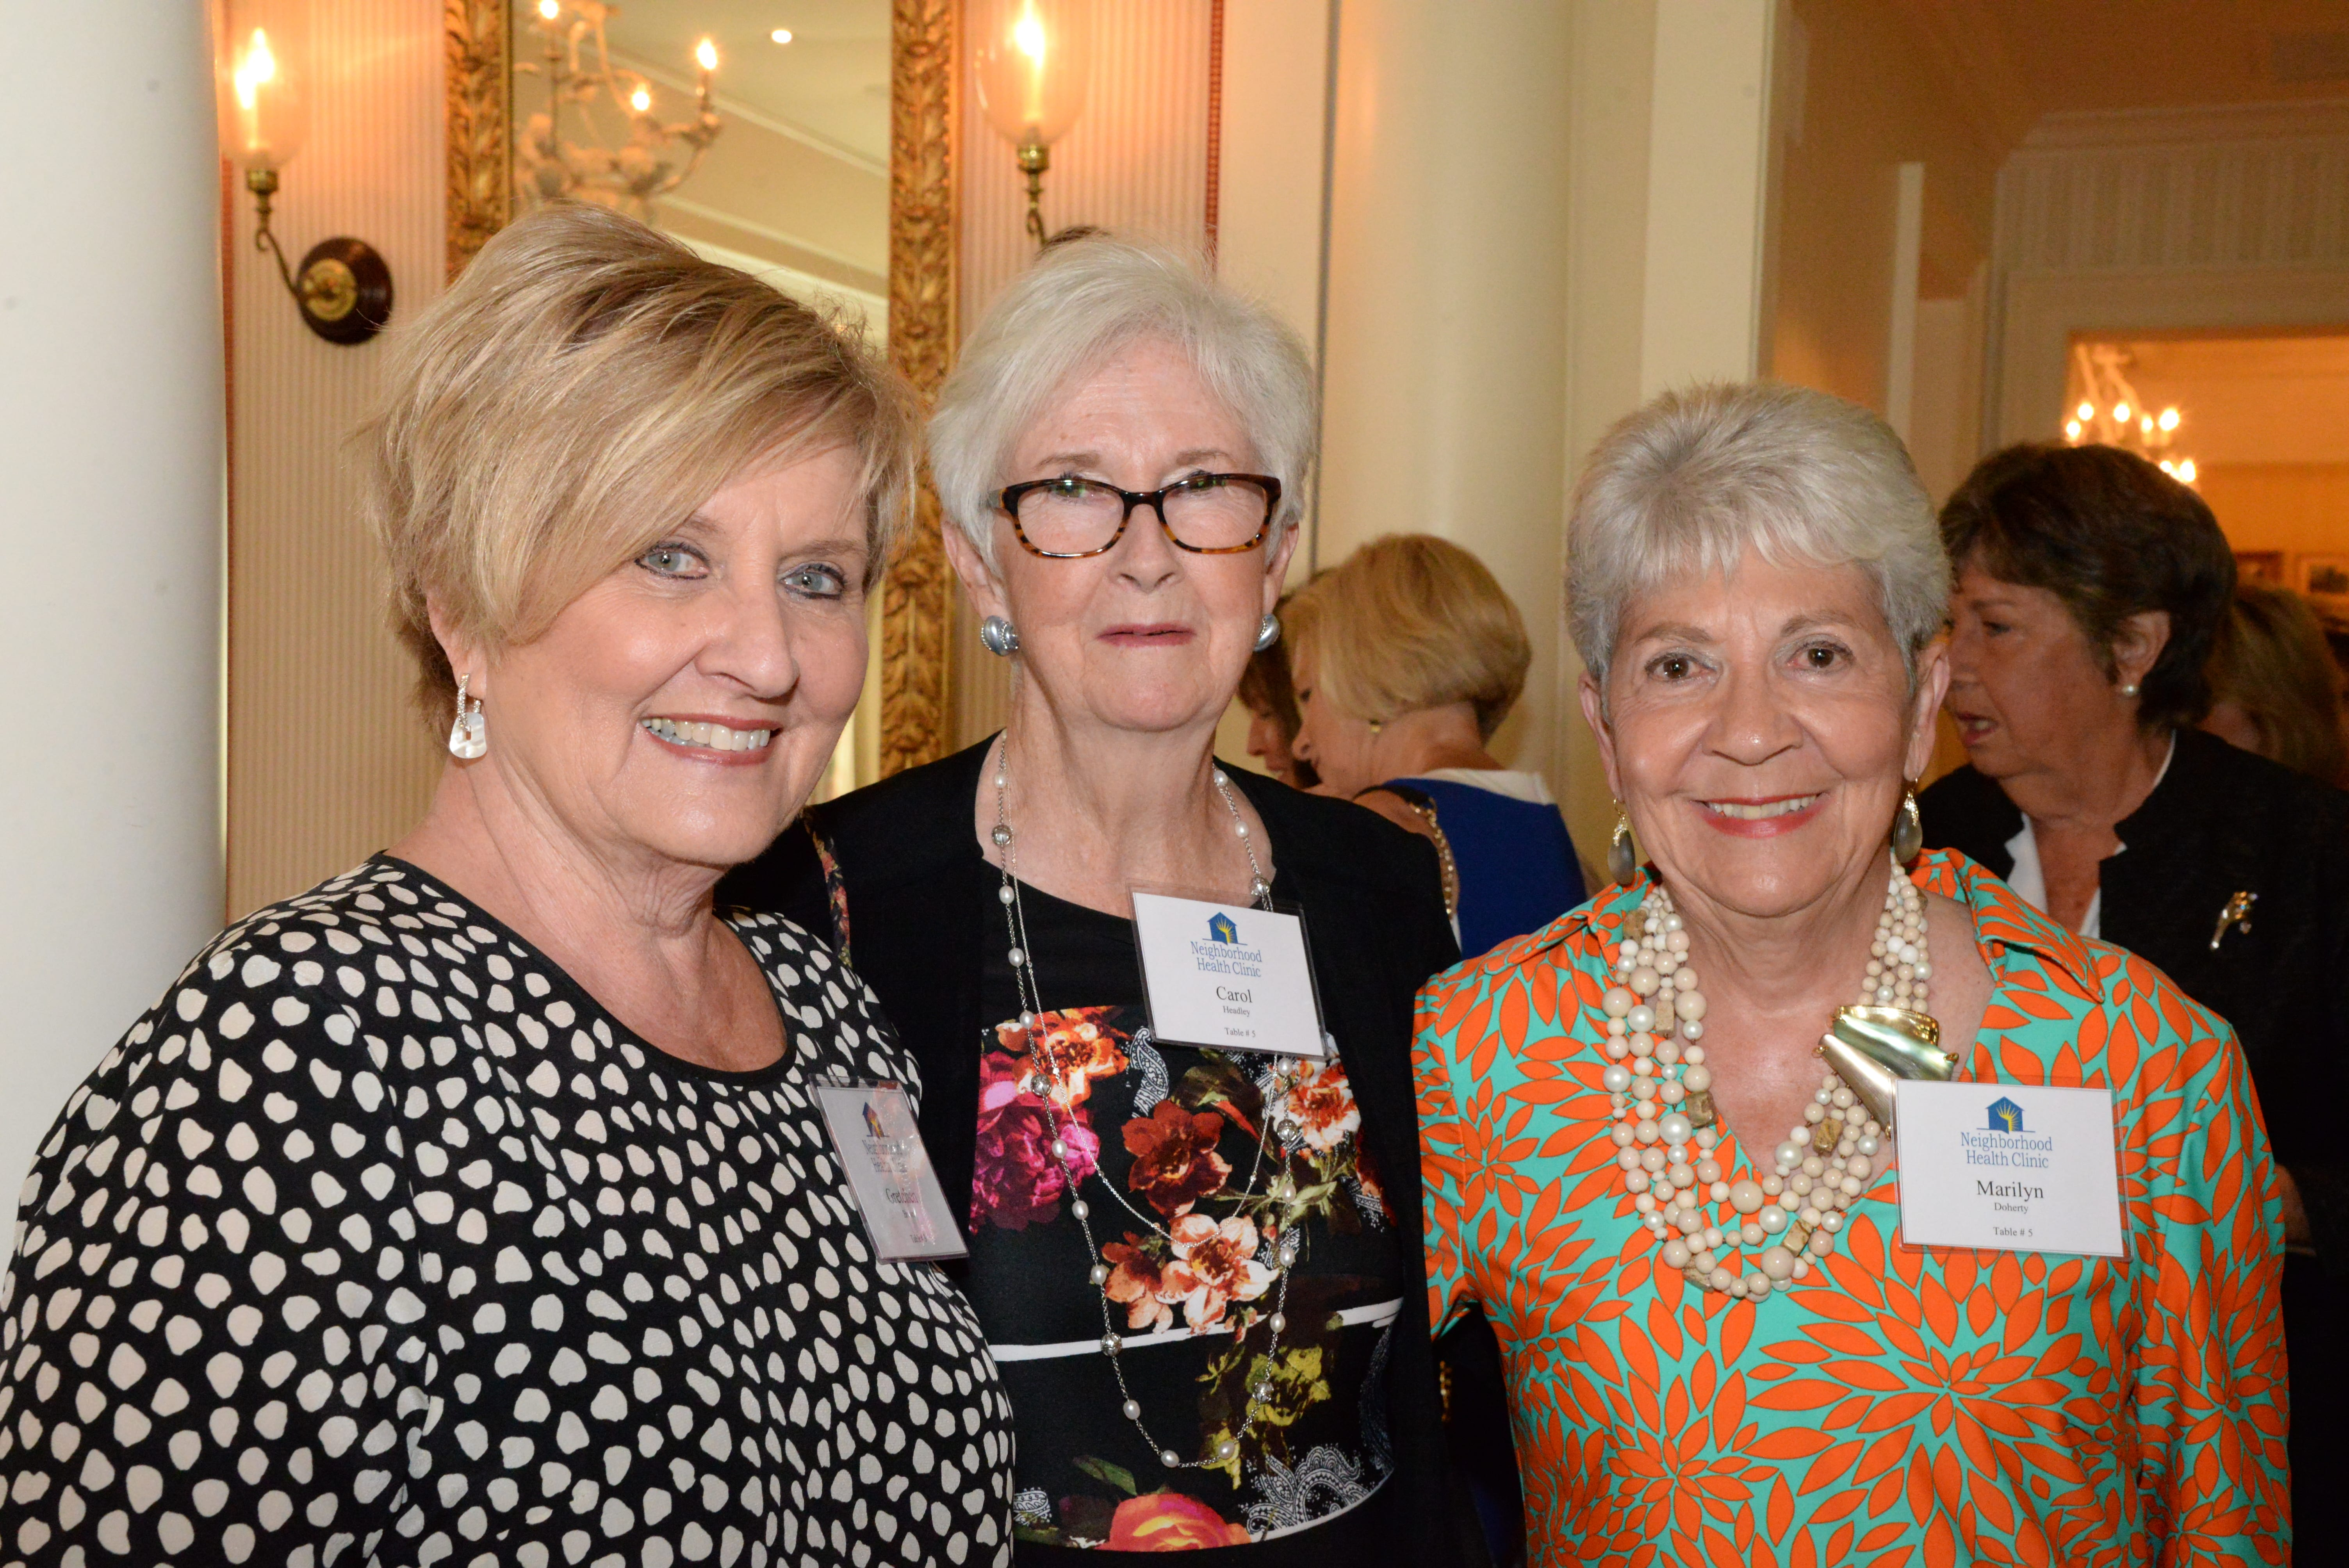 Gretchen Brown, Carol Headley, Marilyn Doherty